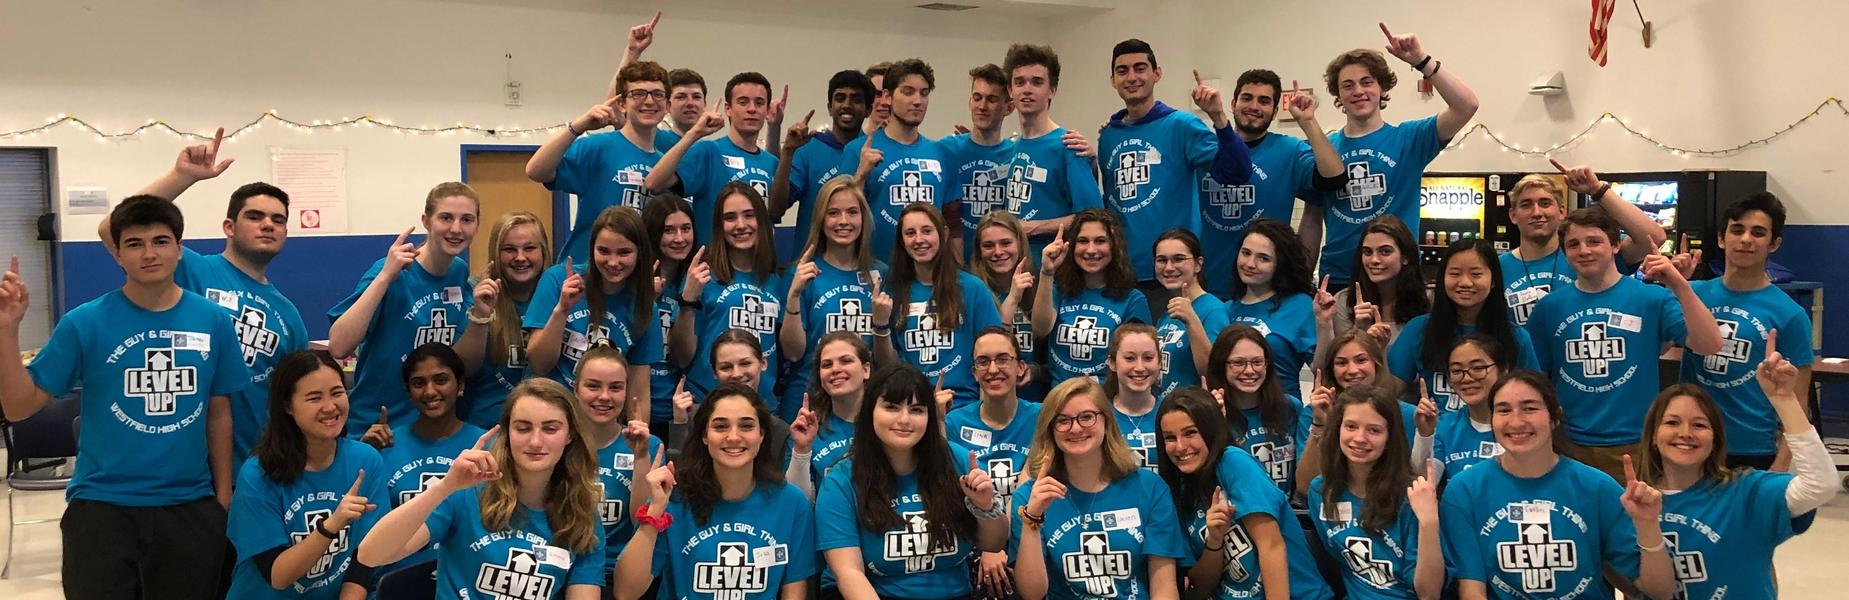 ":  Dubbed the ""Wingmen"" and ""Cover Girls"" because they ""take underclassmen under their wings and provide emotional cover,"" 45 WHS juniors and seniors facilitated the annual Guy & Girl Thing at Westfield High School on March 22."